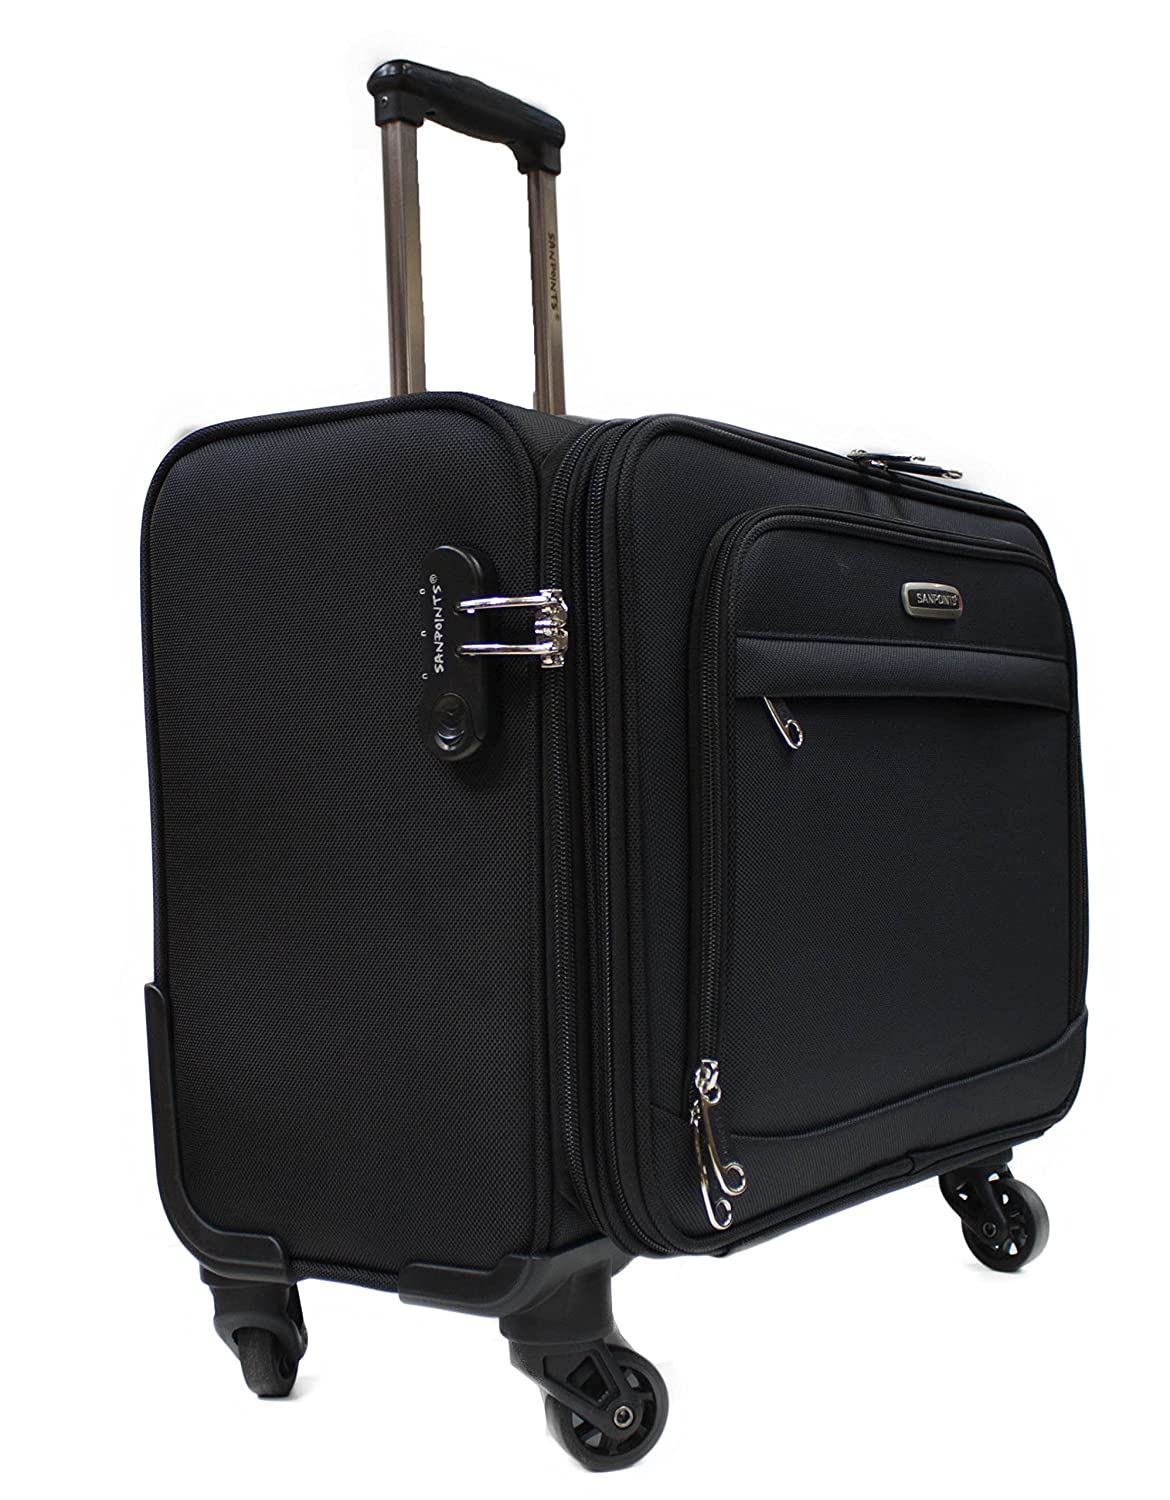 4 wheel laptop cabin hand luggage pilot case trolley business travel bag